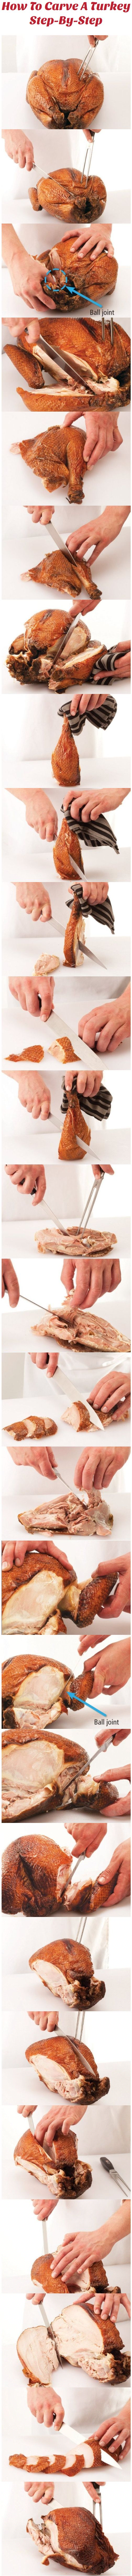 Step-By-Step Turkey Carving